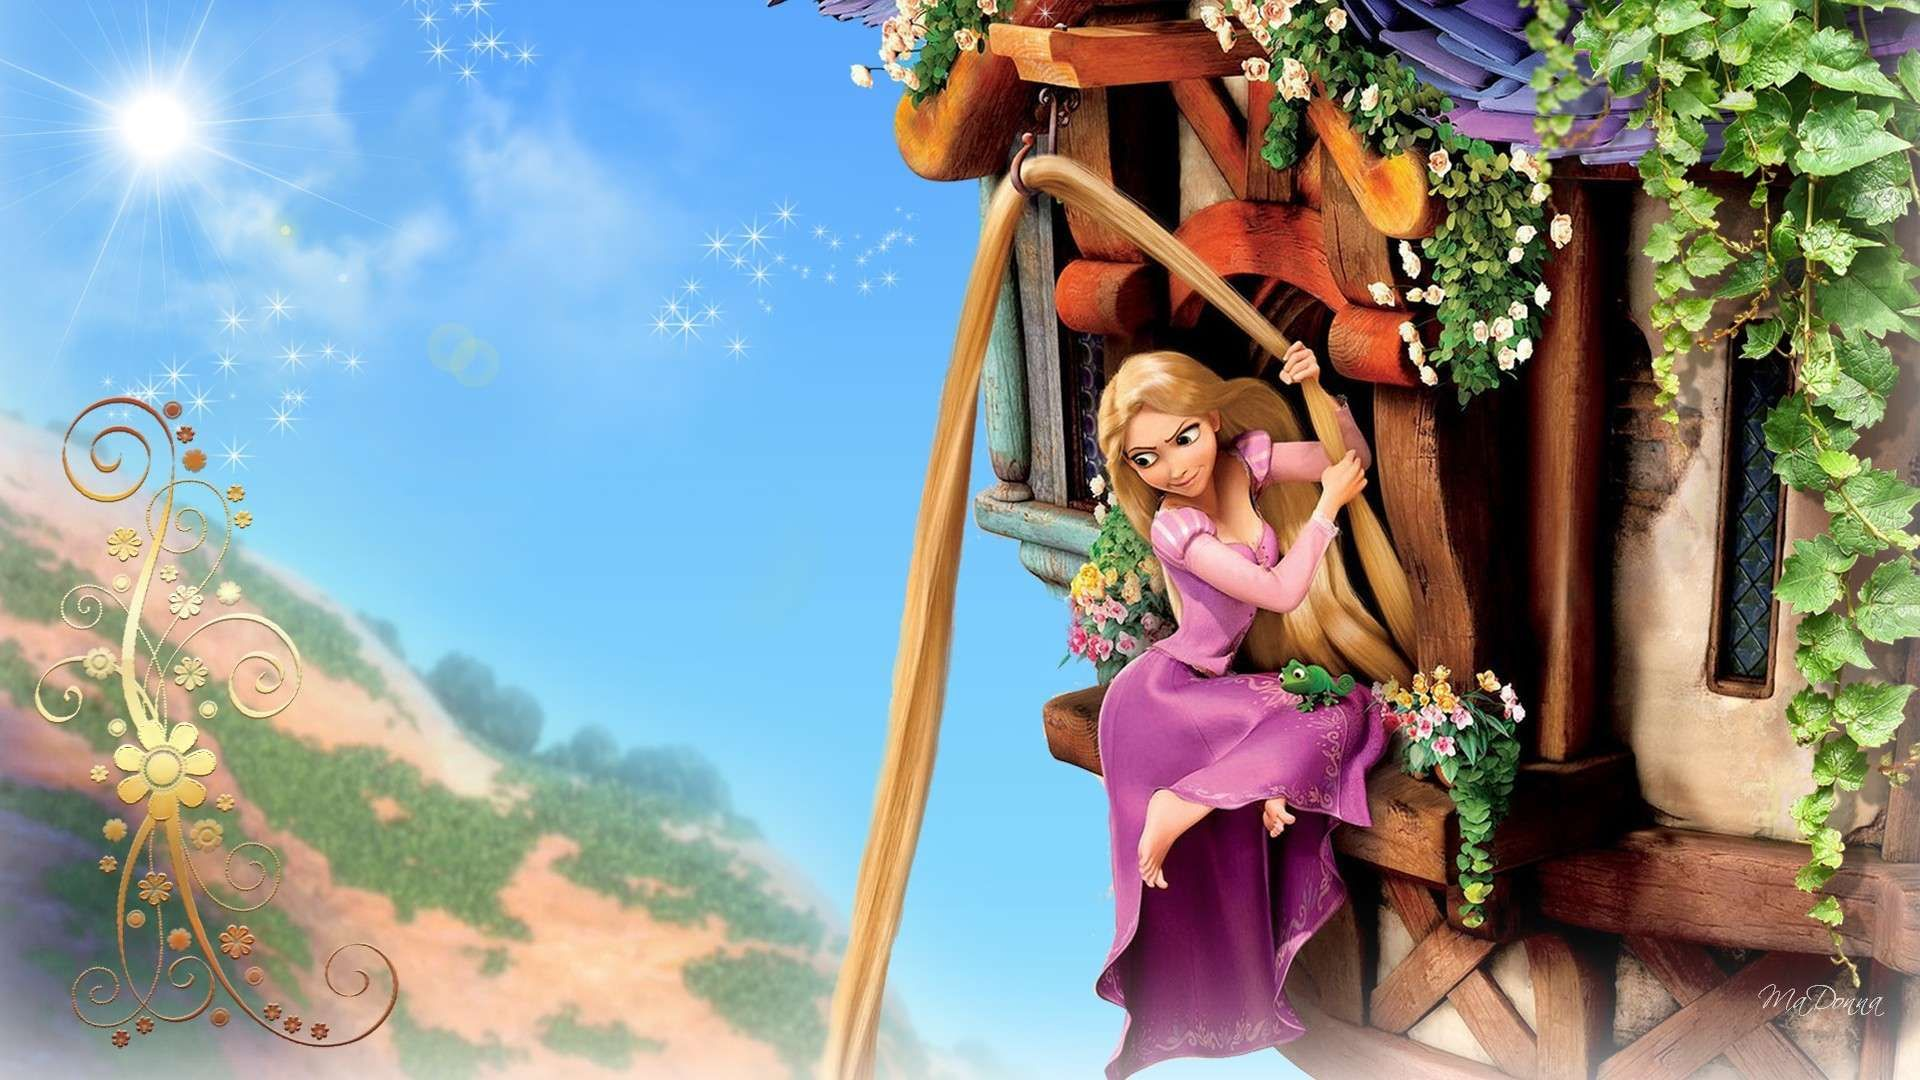 Pin By Hd Wallpapers On Hd Wallpapers Tangled Wallpaper